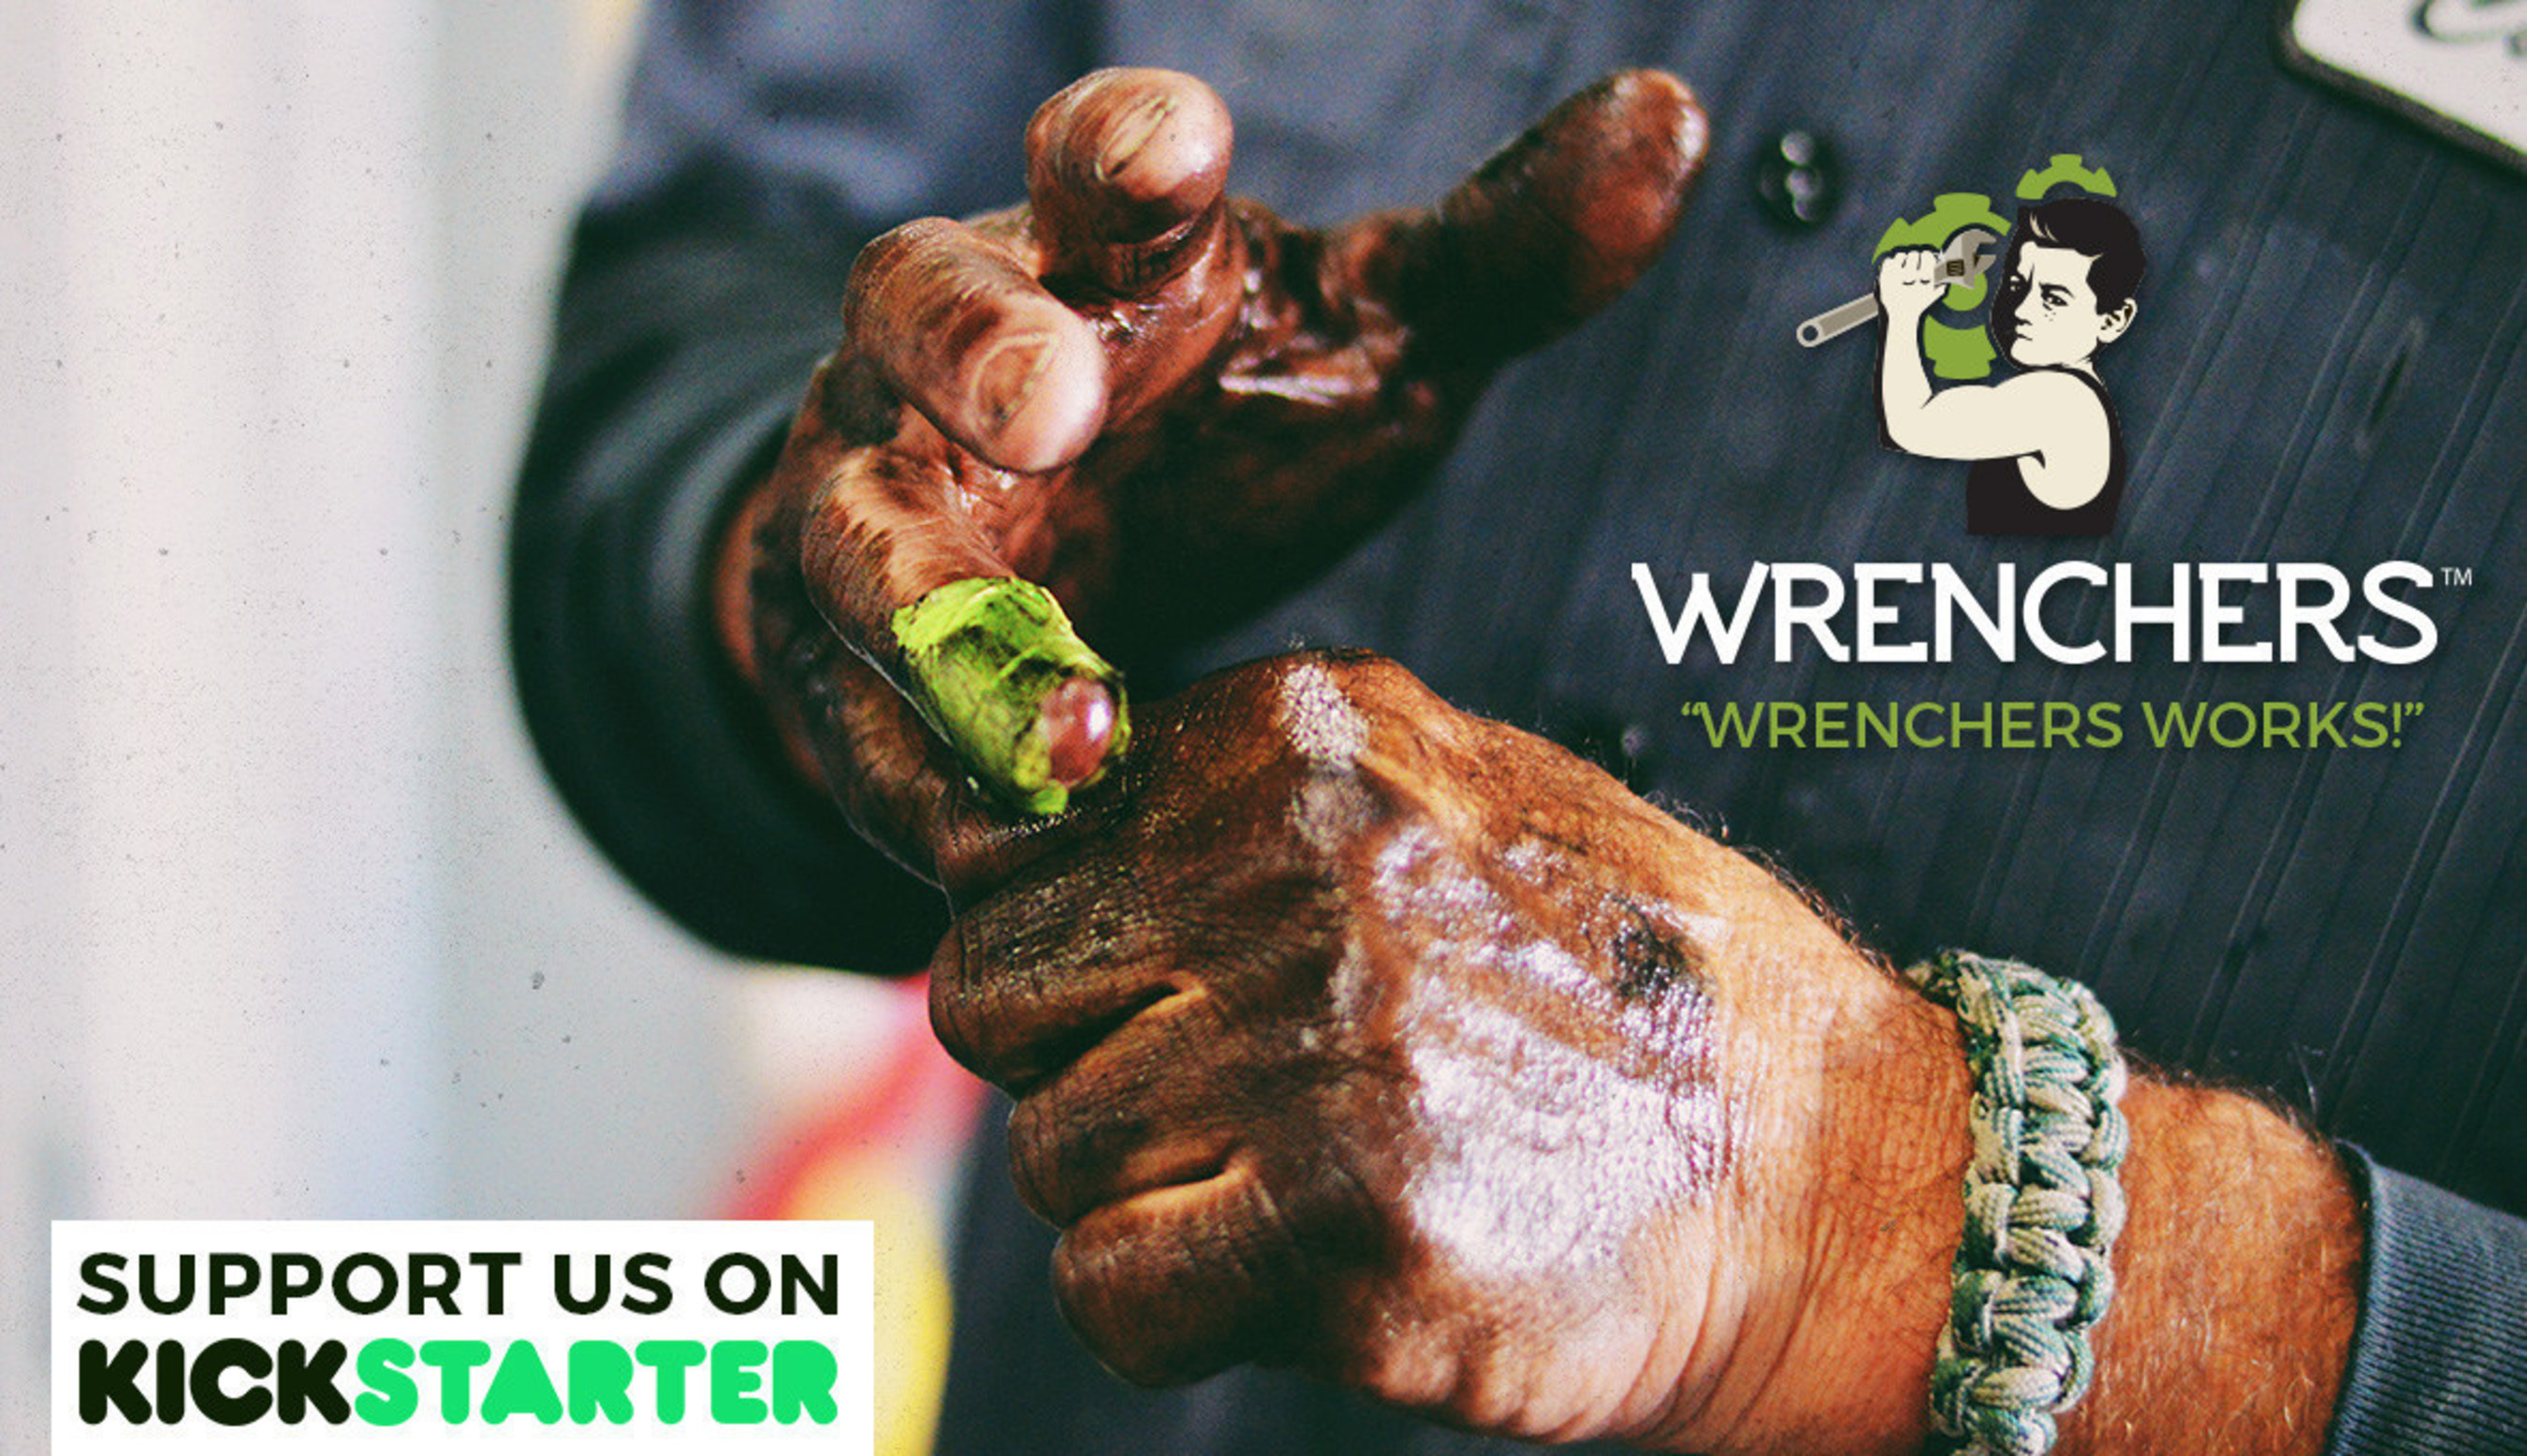 Wrenchers™ Body Products Launches Kickstarter Campaign